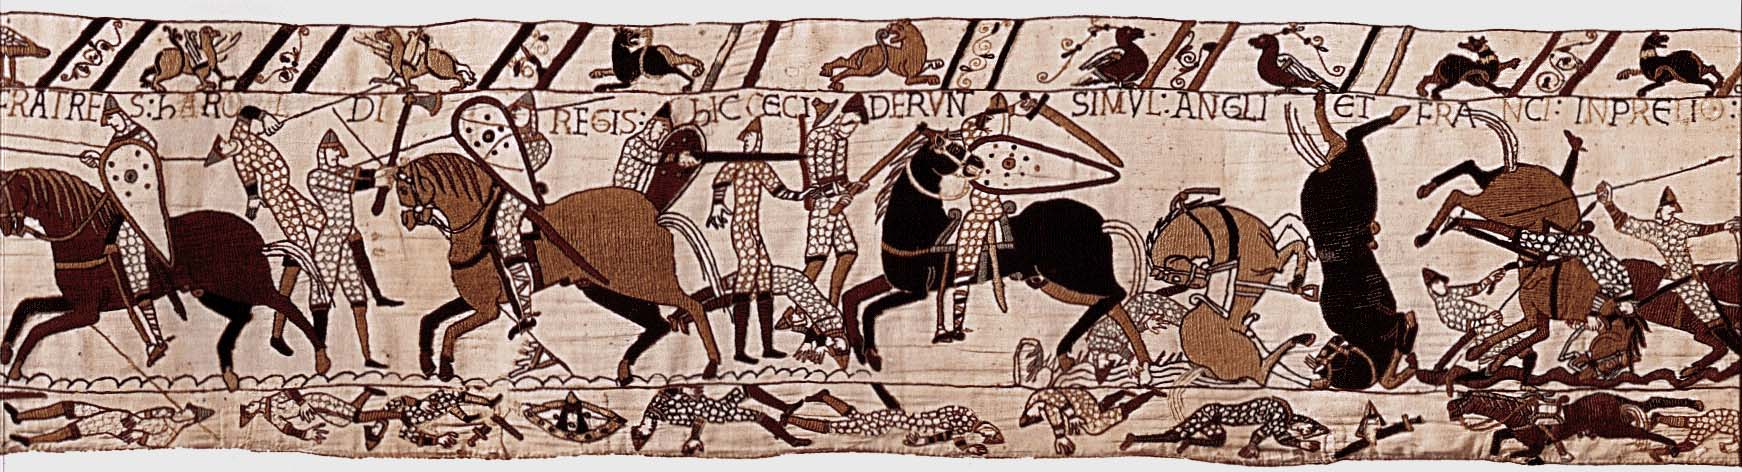 Bayeux Tapestry: Normans battle